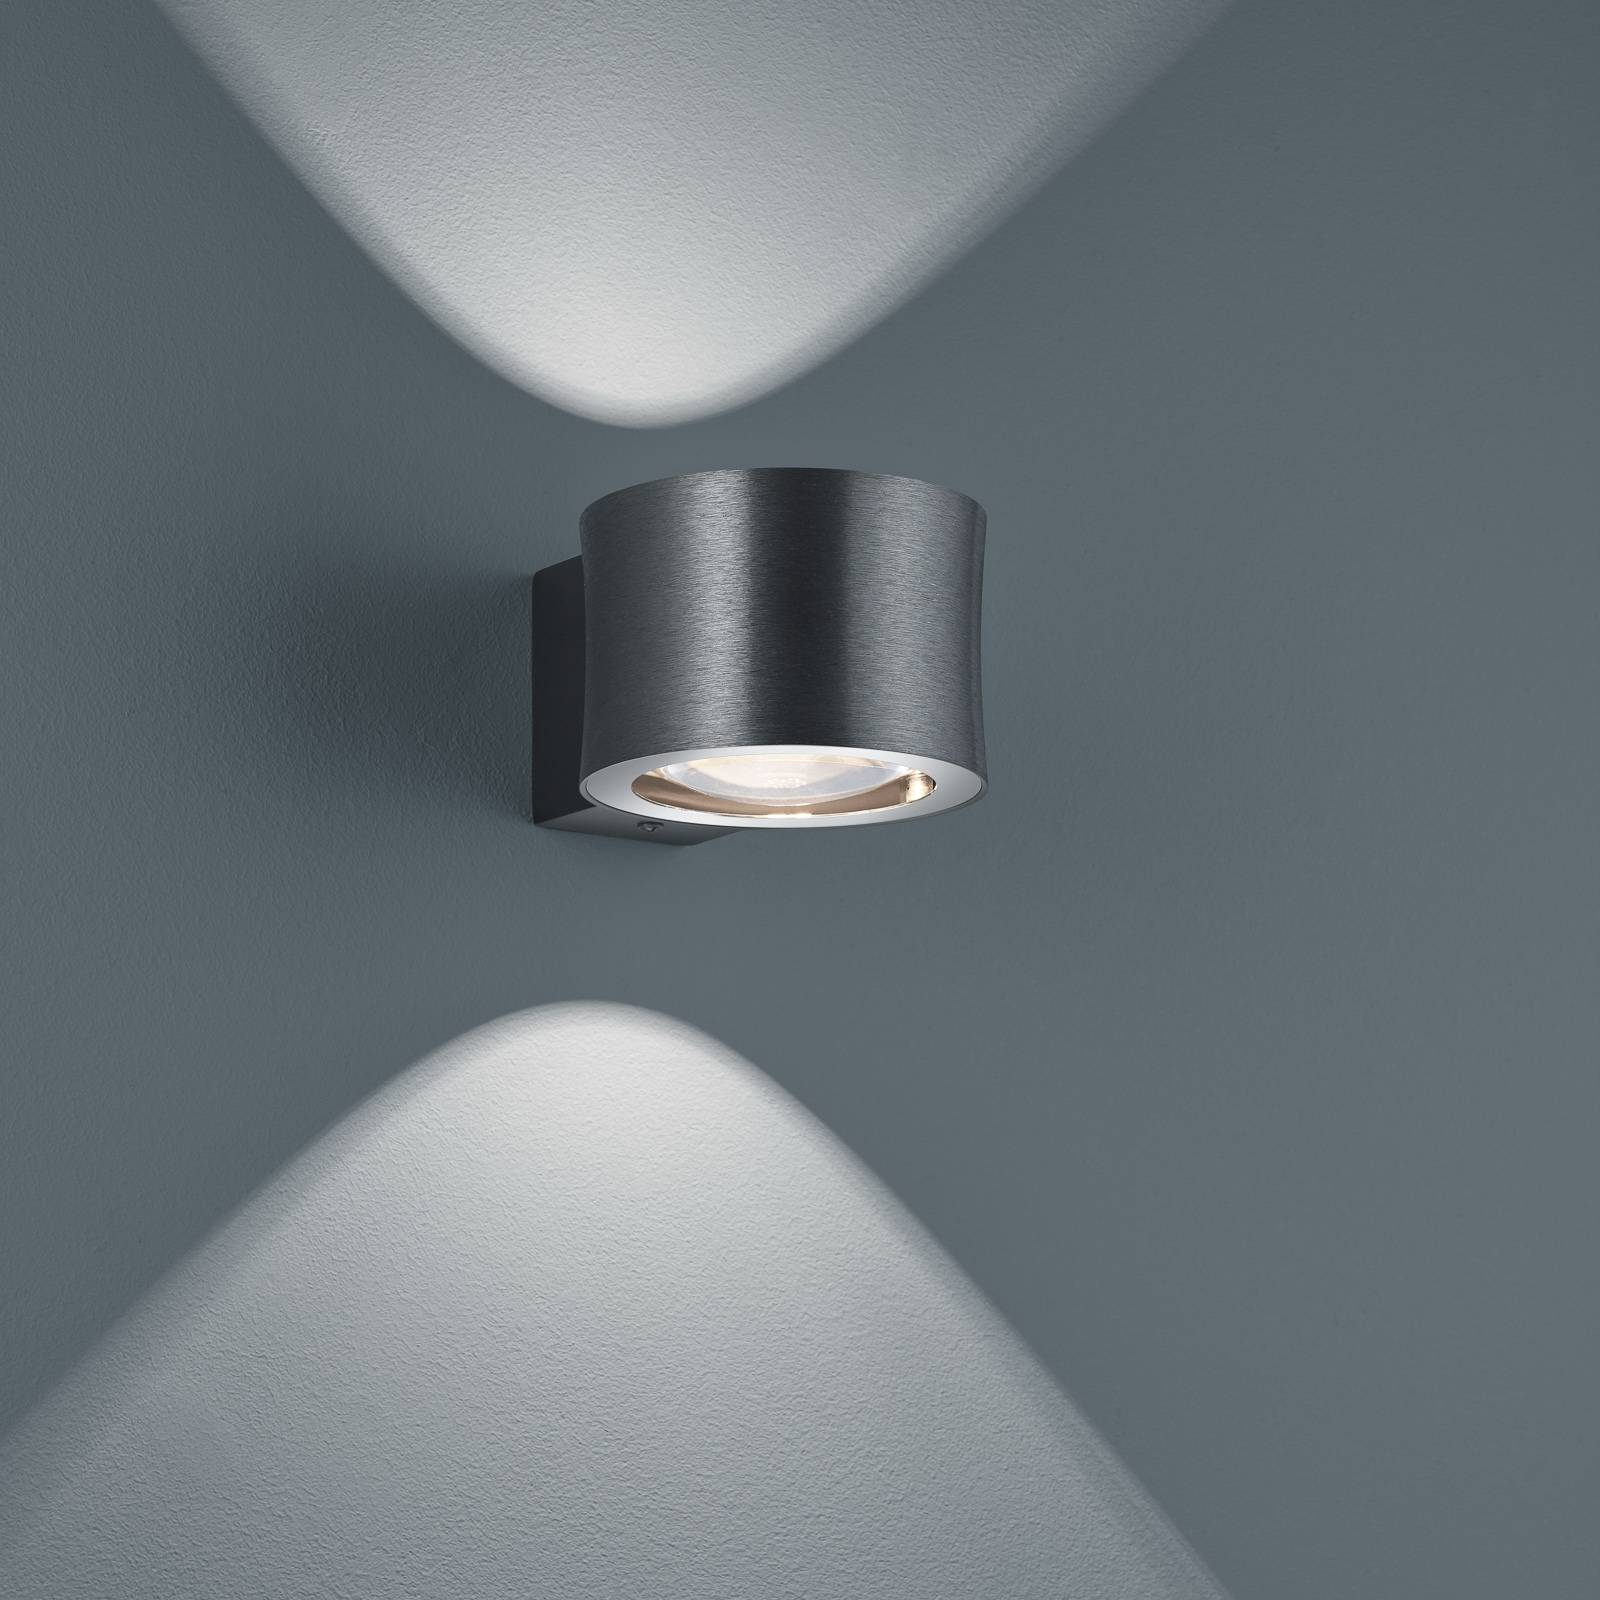 BANKAMP Impulse applique LED anthracite